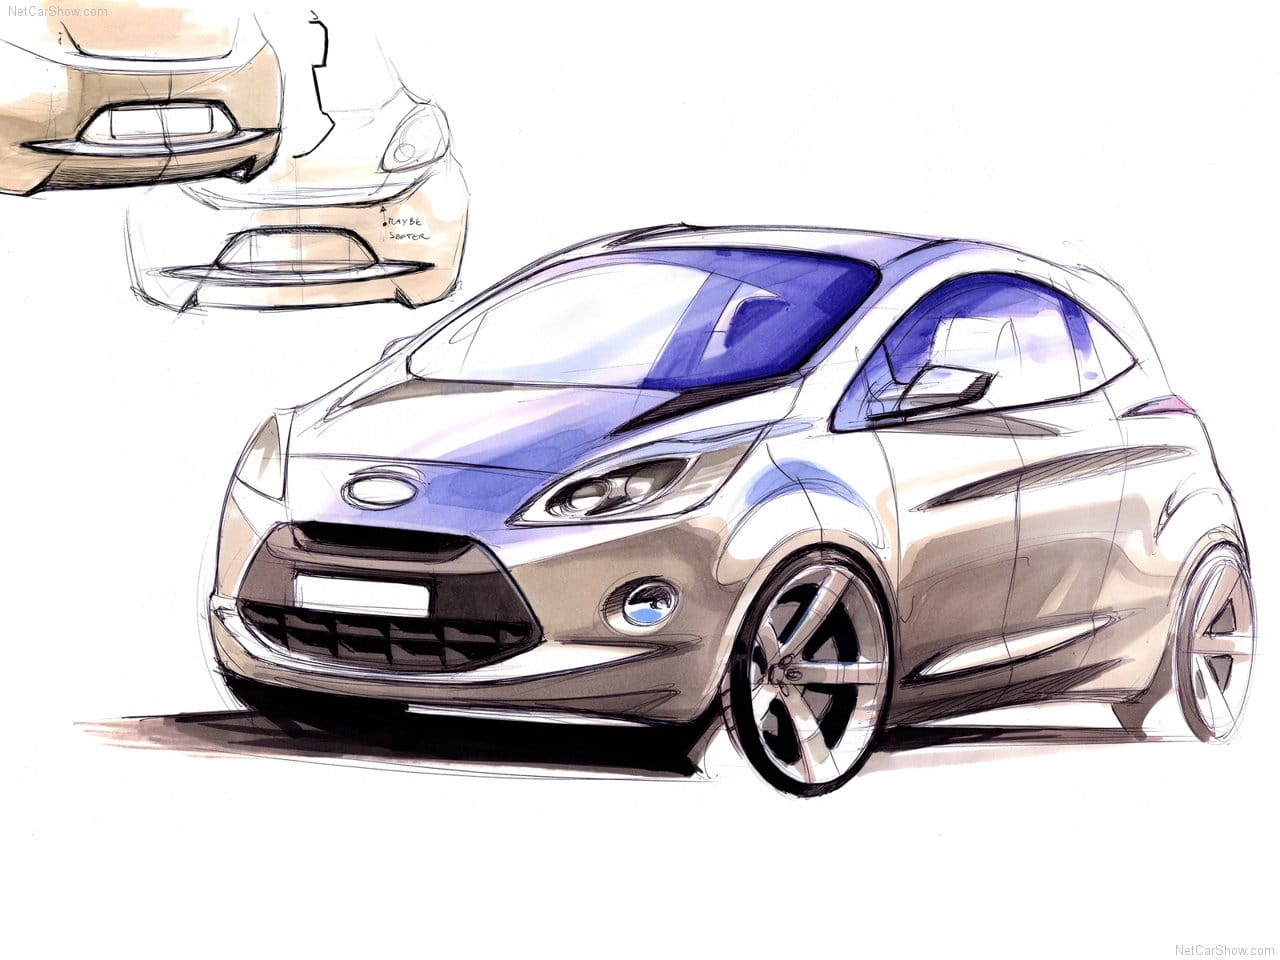 Ford Ka, Ford, Ka, Fiat 500, Fiat, 500, ford ka buying guides, motoring, automotive, adrian flux, not2grand, not2grand.co.uk, hatchback, motoring, automotive, ebay, ebay motors, autotrader